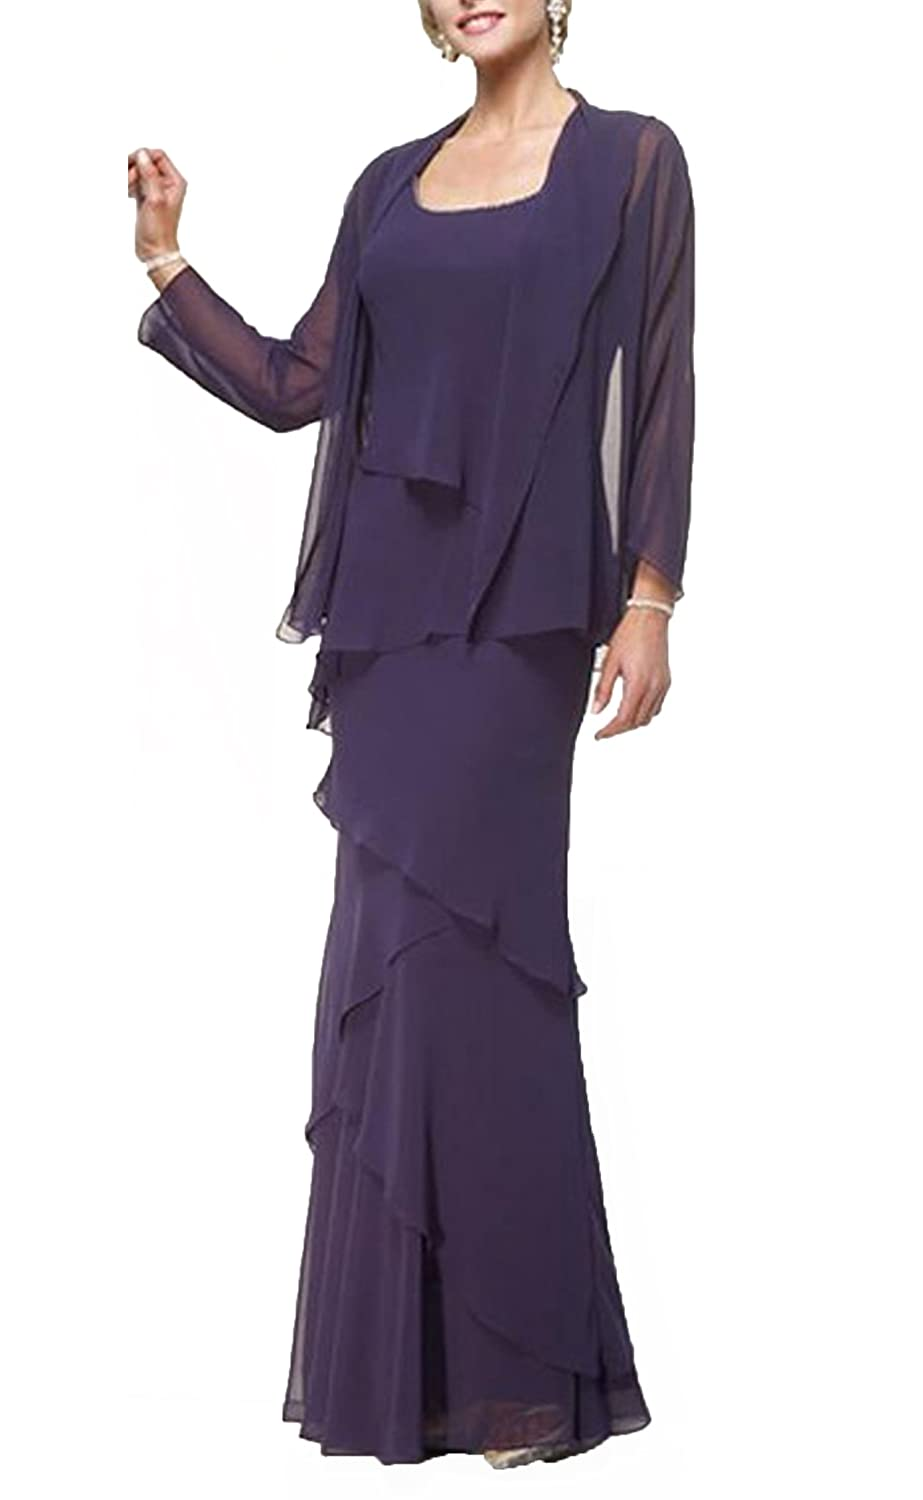 PROMNOVAS Womens Chiffon Two Pieces Mother of The Bride Dress with Jacket